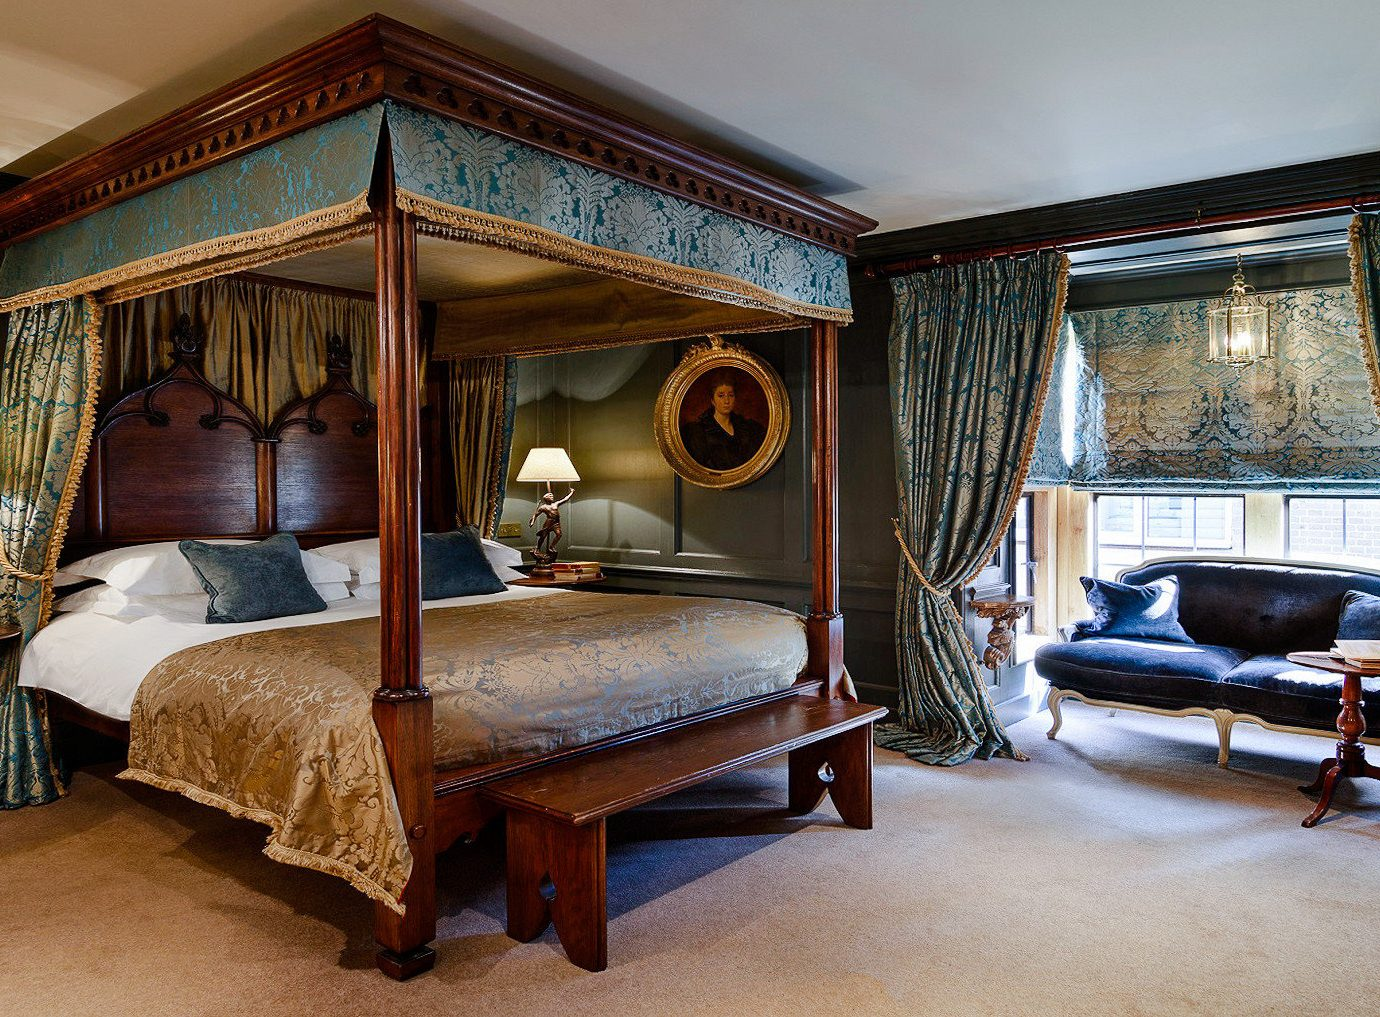 Boutique Hotels London Romantic Hotels indoor floor room interior design Bedroom estate ceiling Suite furniture real estate window bed house window treatment four poster